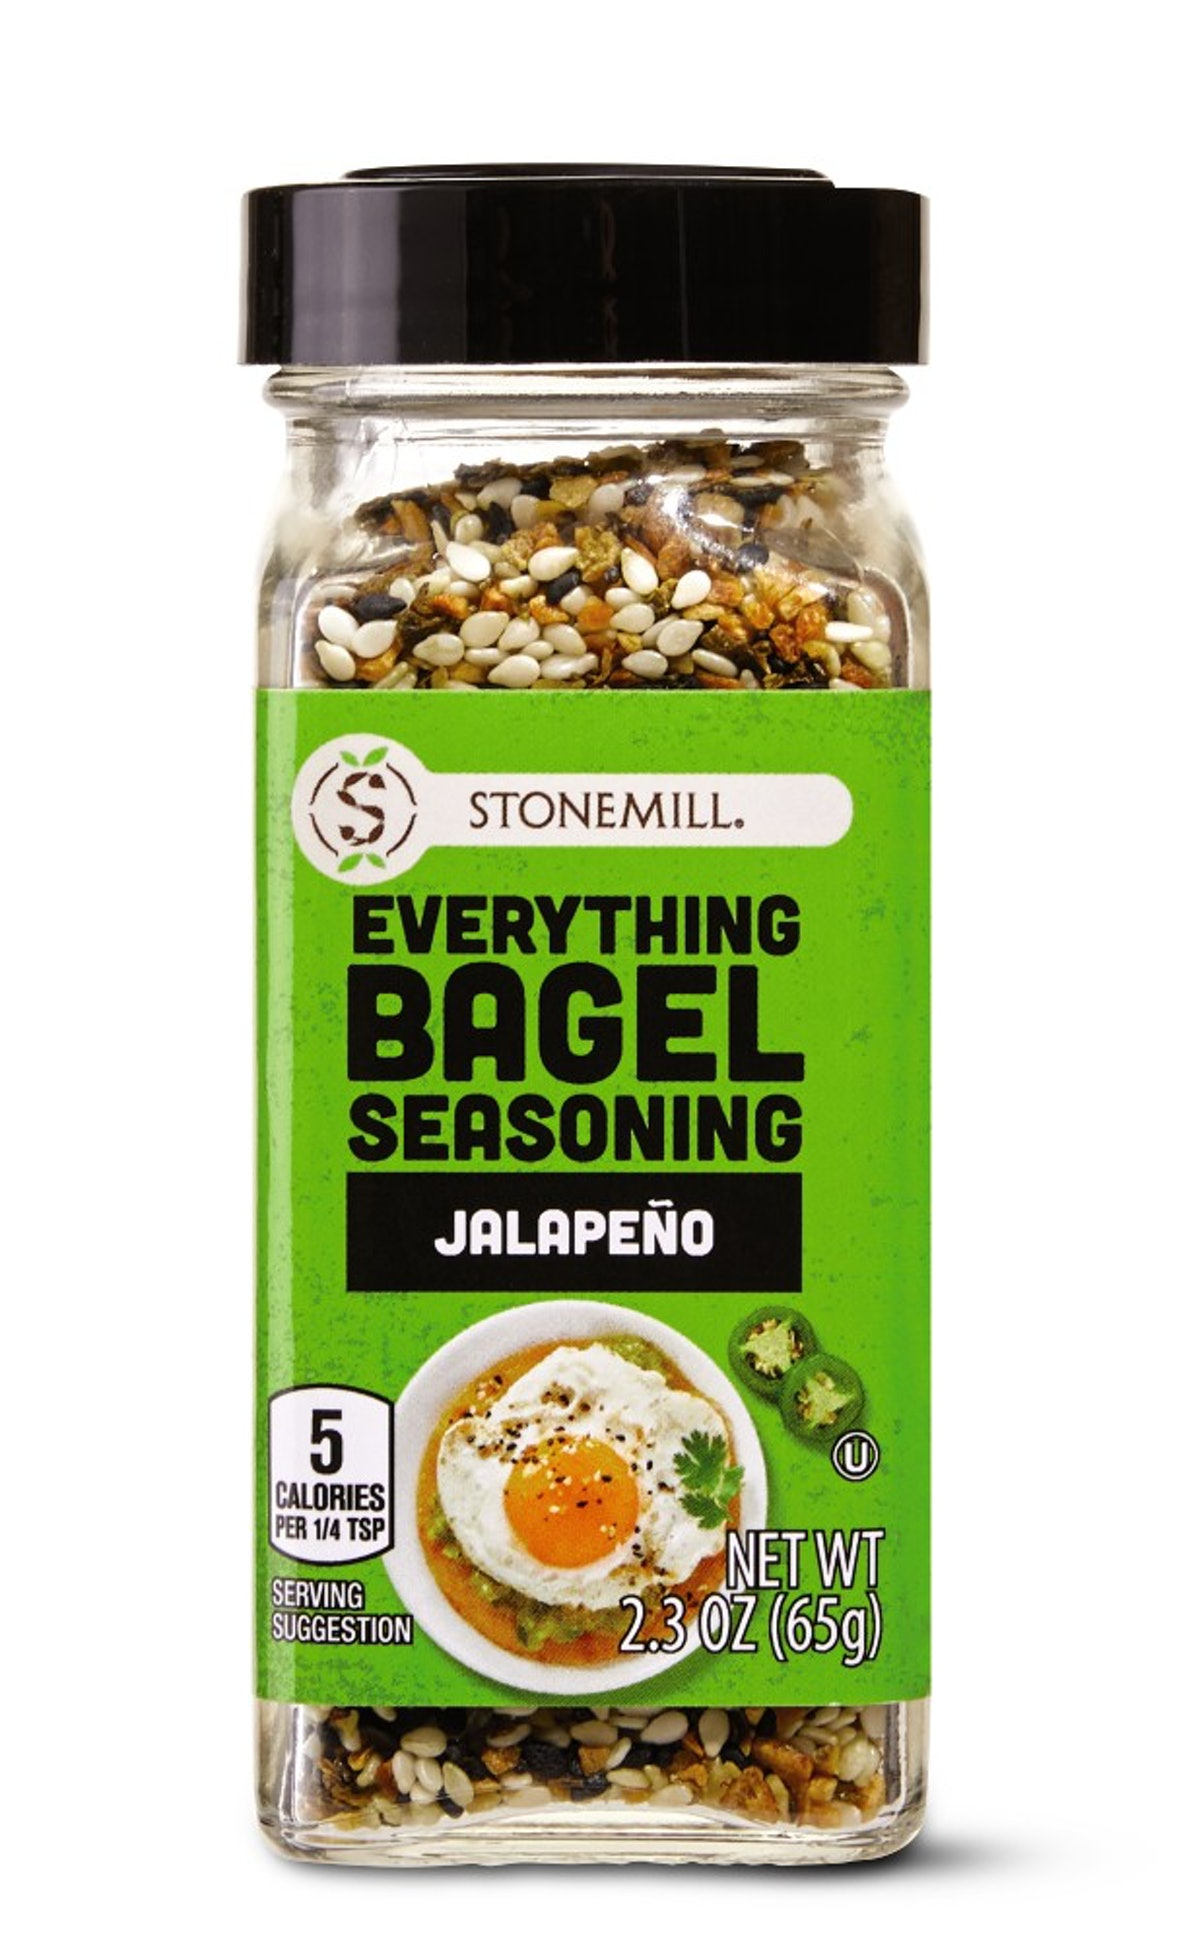 Aldi's Everything Bagel Seasonings are already selling out.